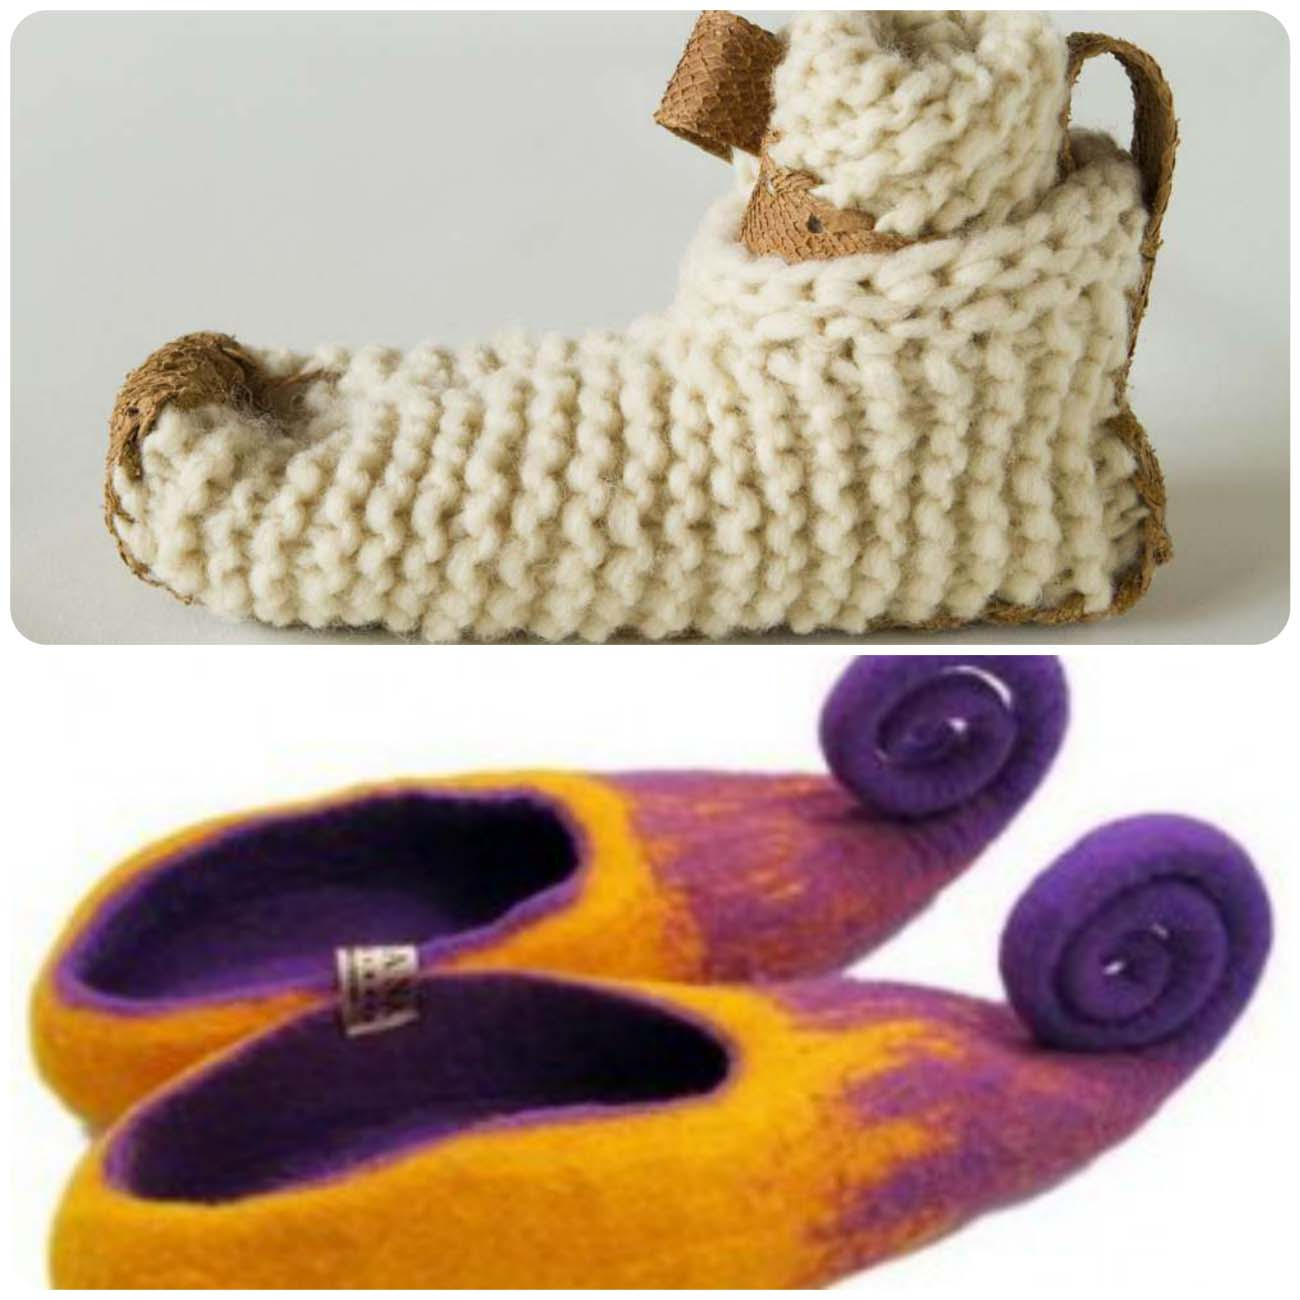 Best Tips To Keep Your Feet warm & Soft This Winter